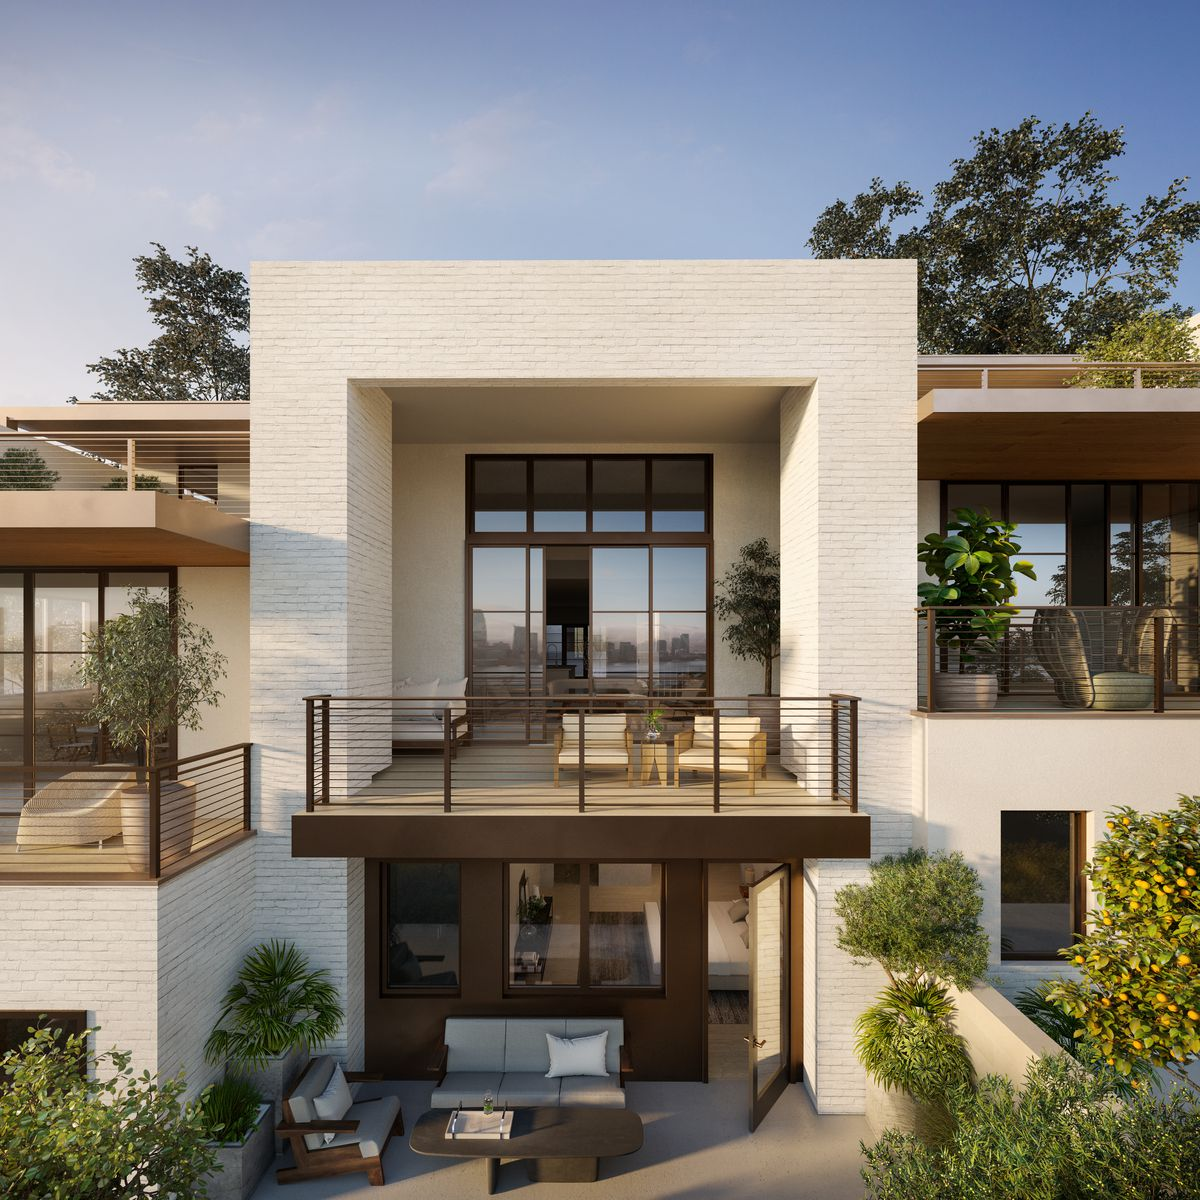 Roswell Luxury New Construction Homes: Luxury Homes Under Construction On Yerba Buena Island